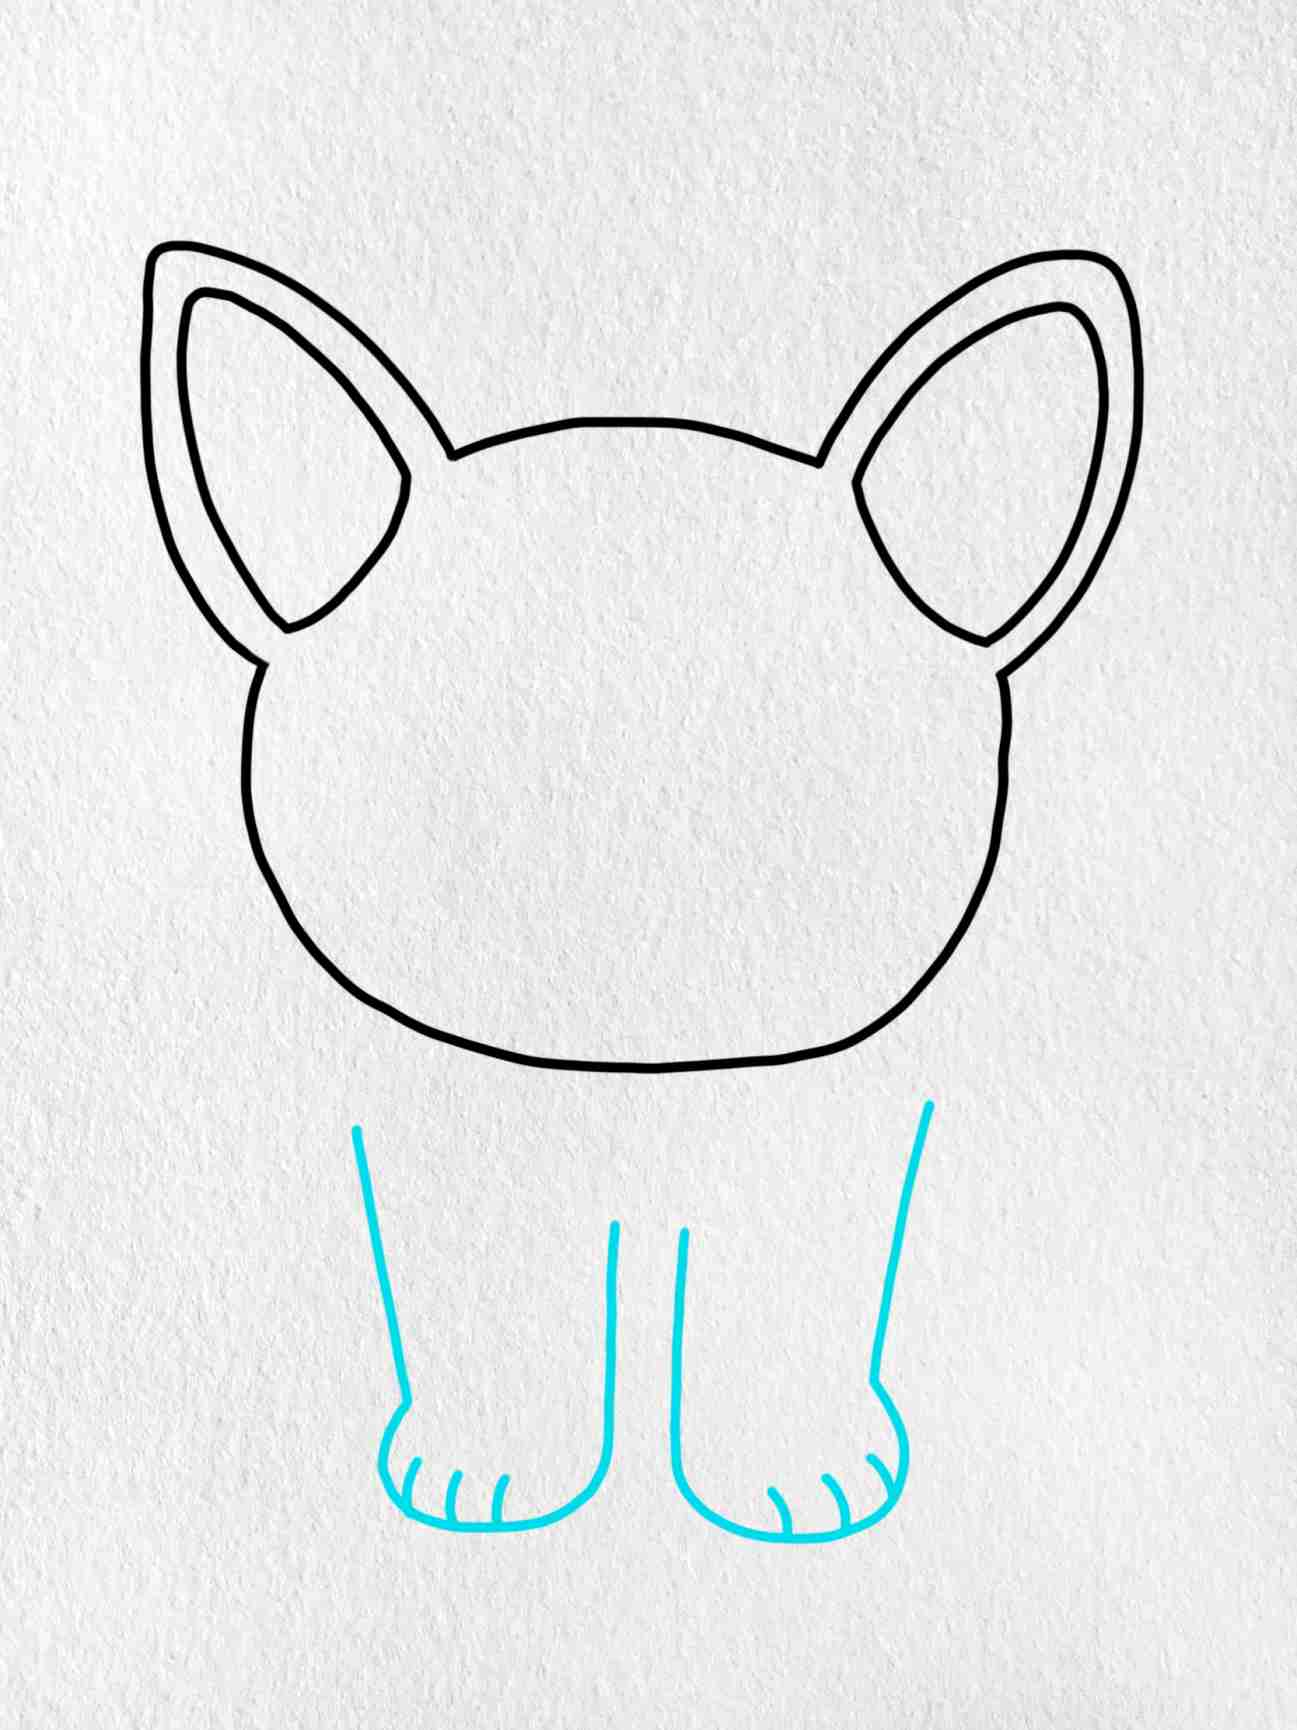 How To Draw A French Bulldog: Step 3